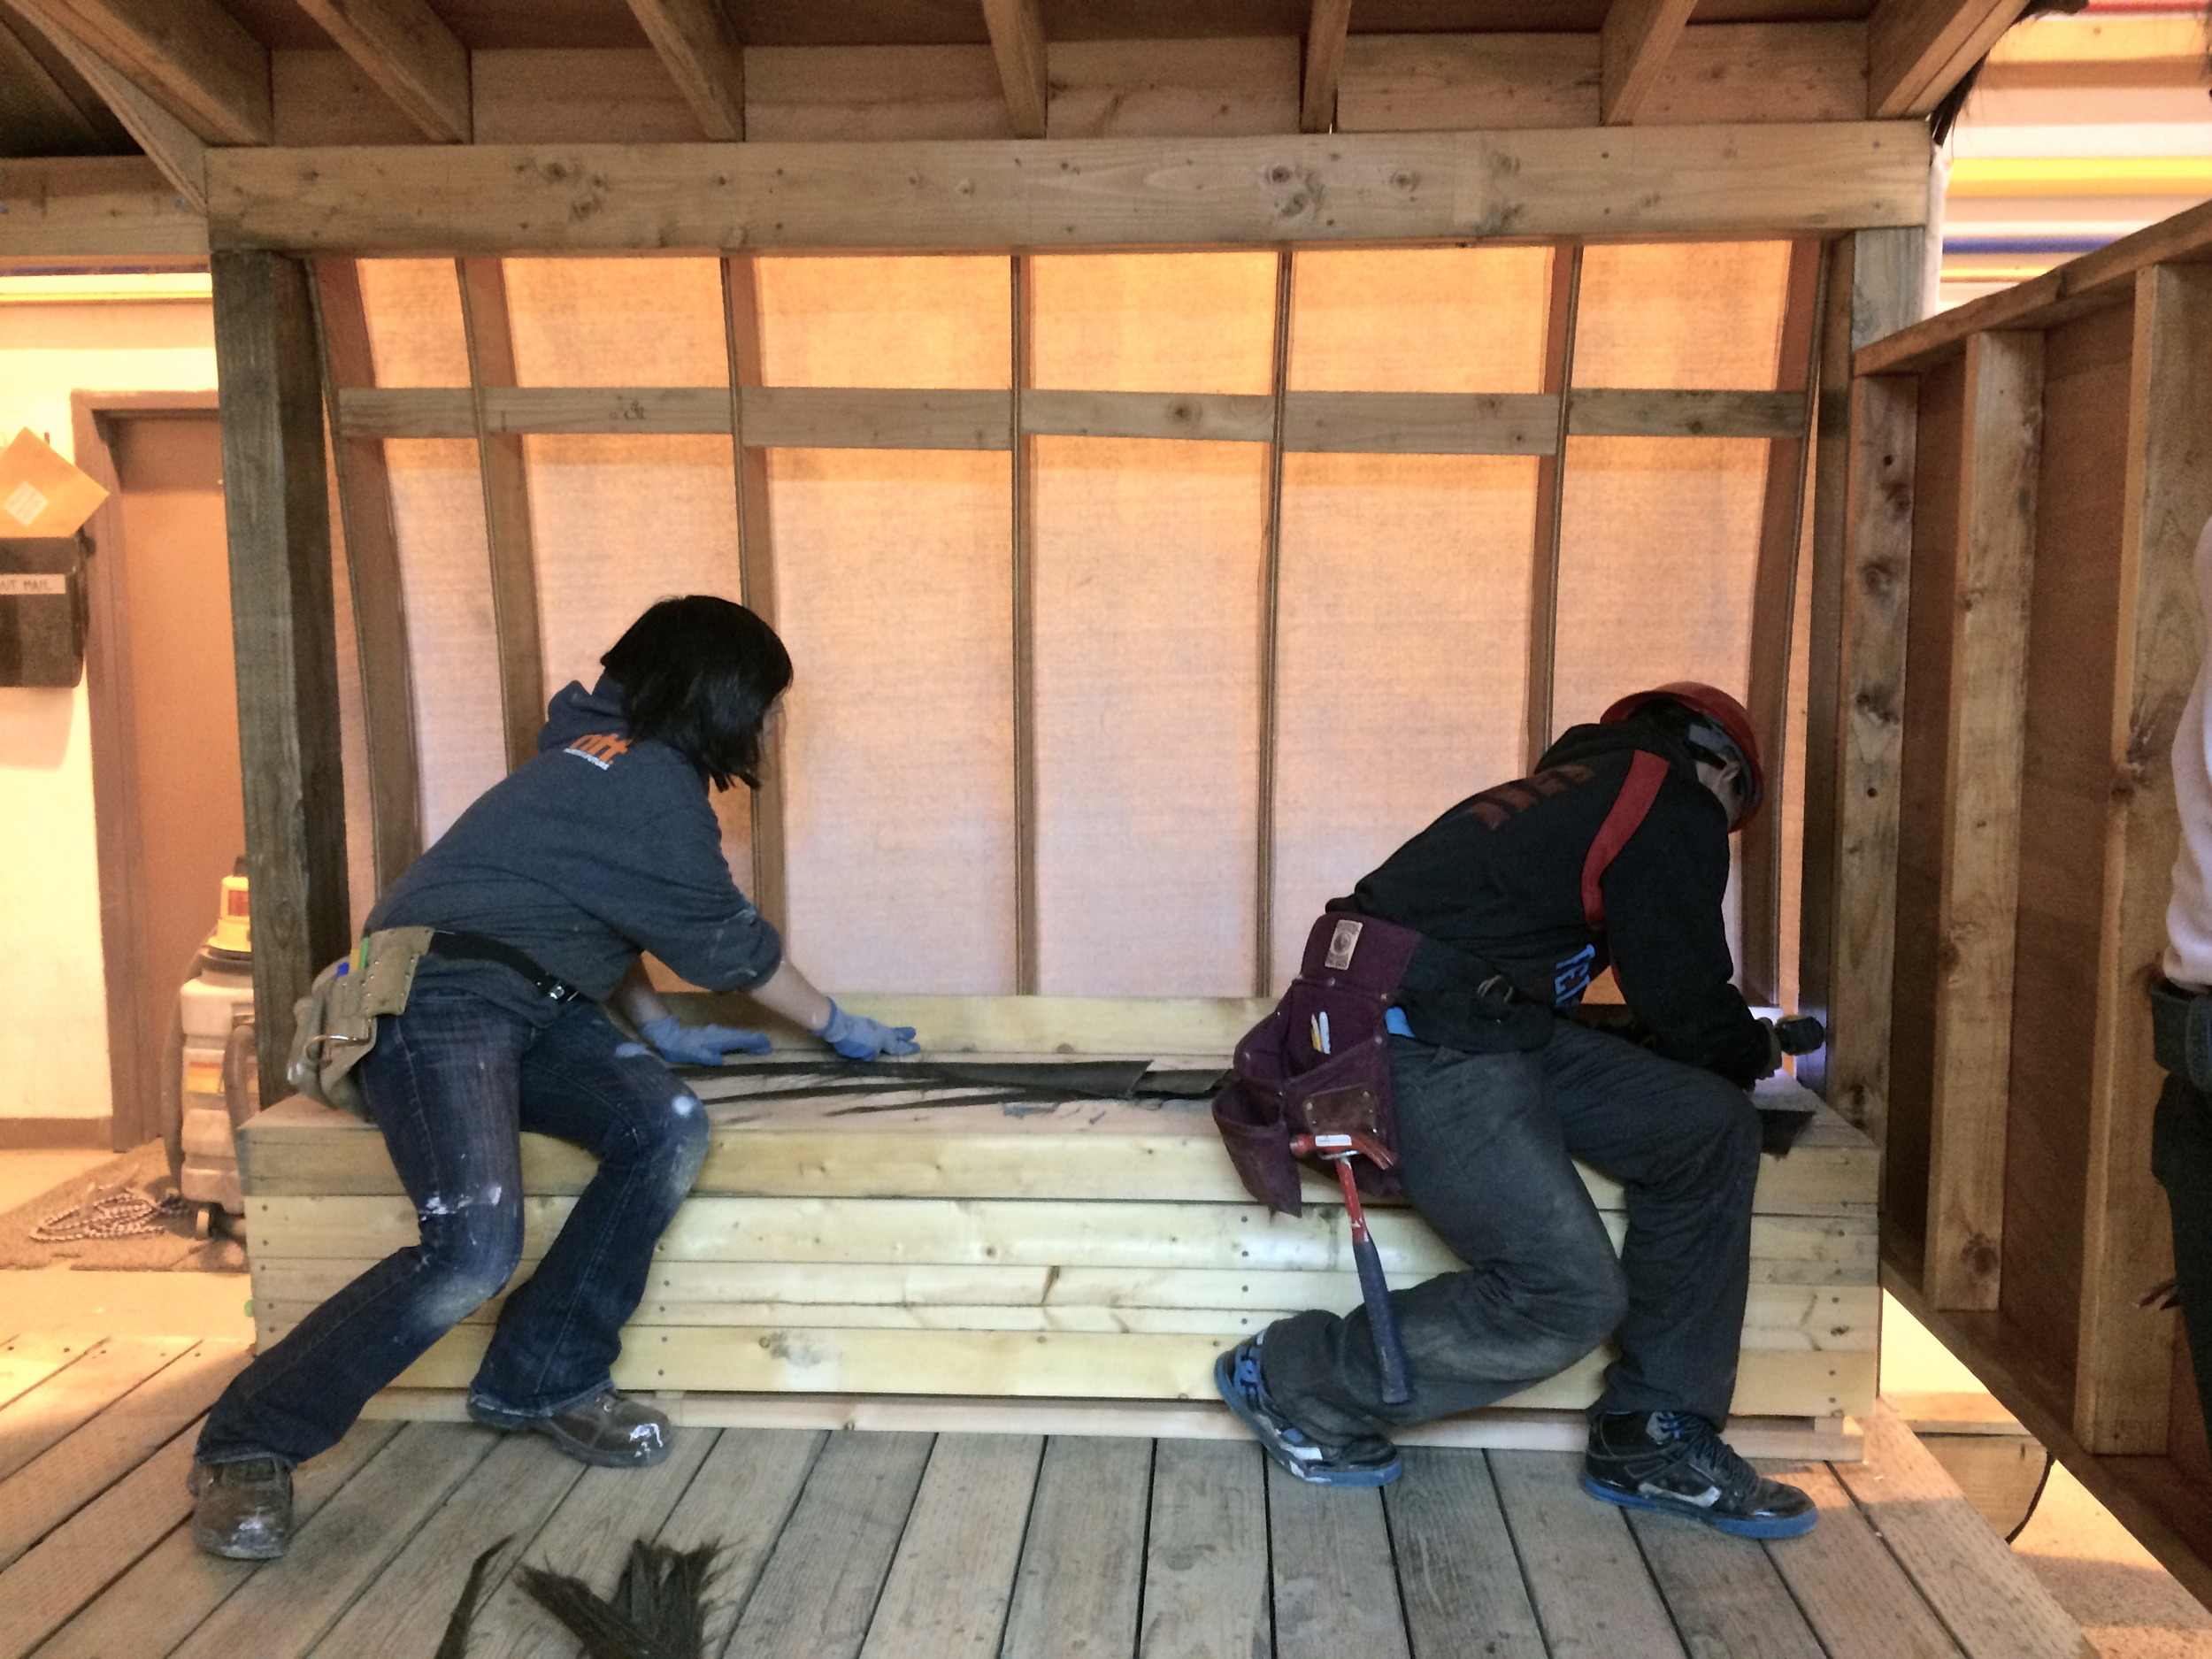 Kirsten and Joe work on finishing a bench.